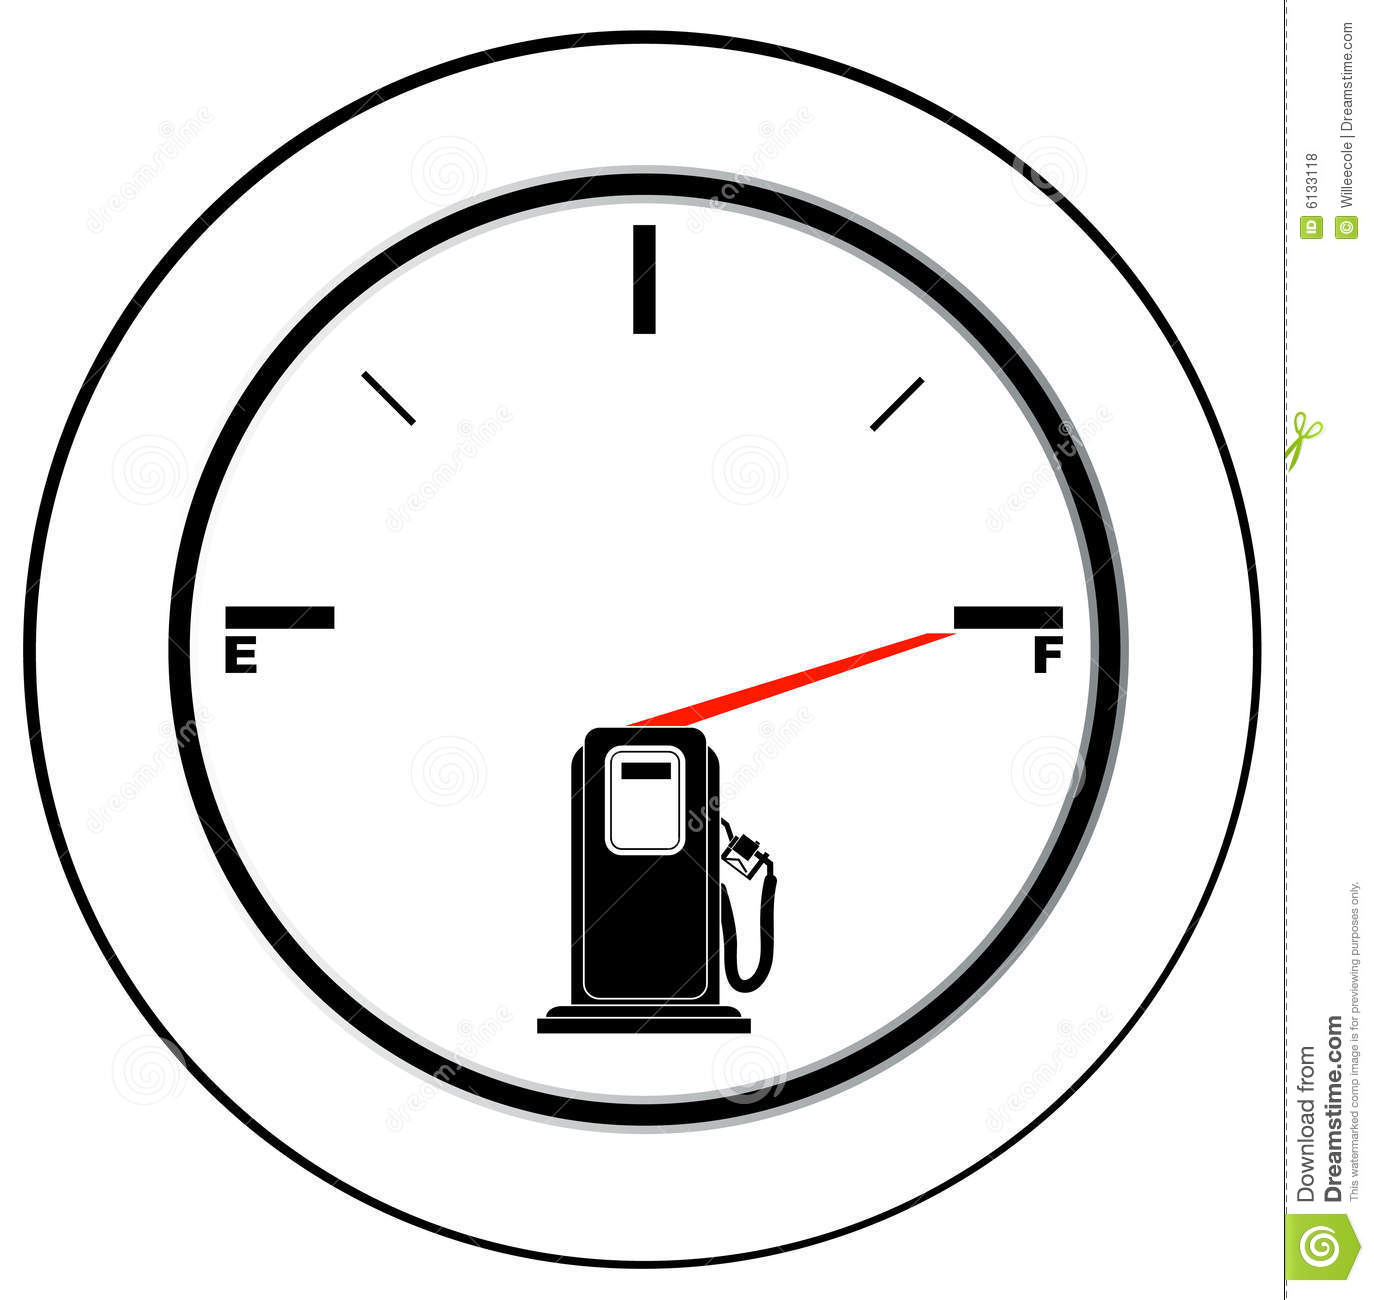 Full Fuel Gauge Royalty Free Stock Image.